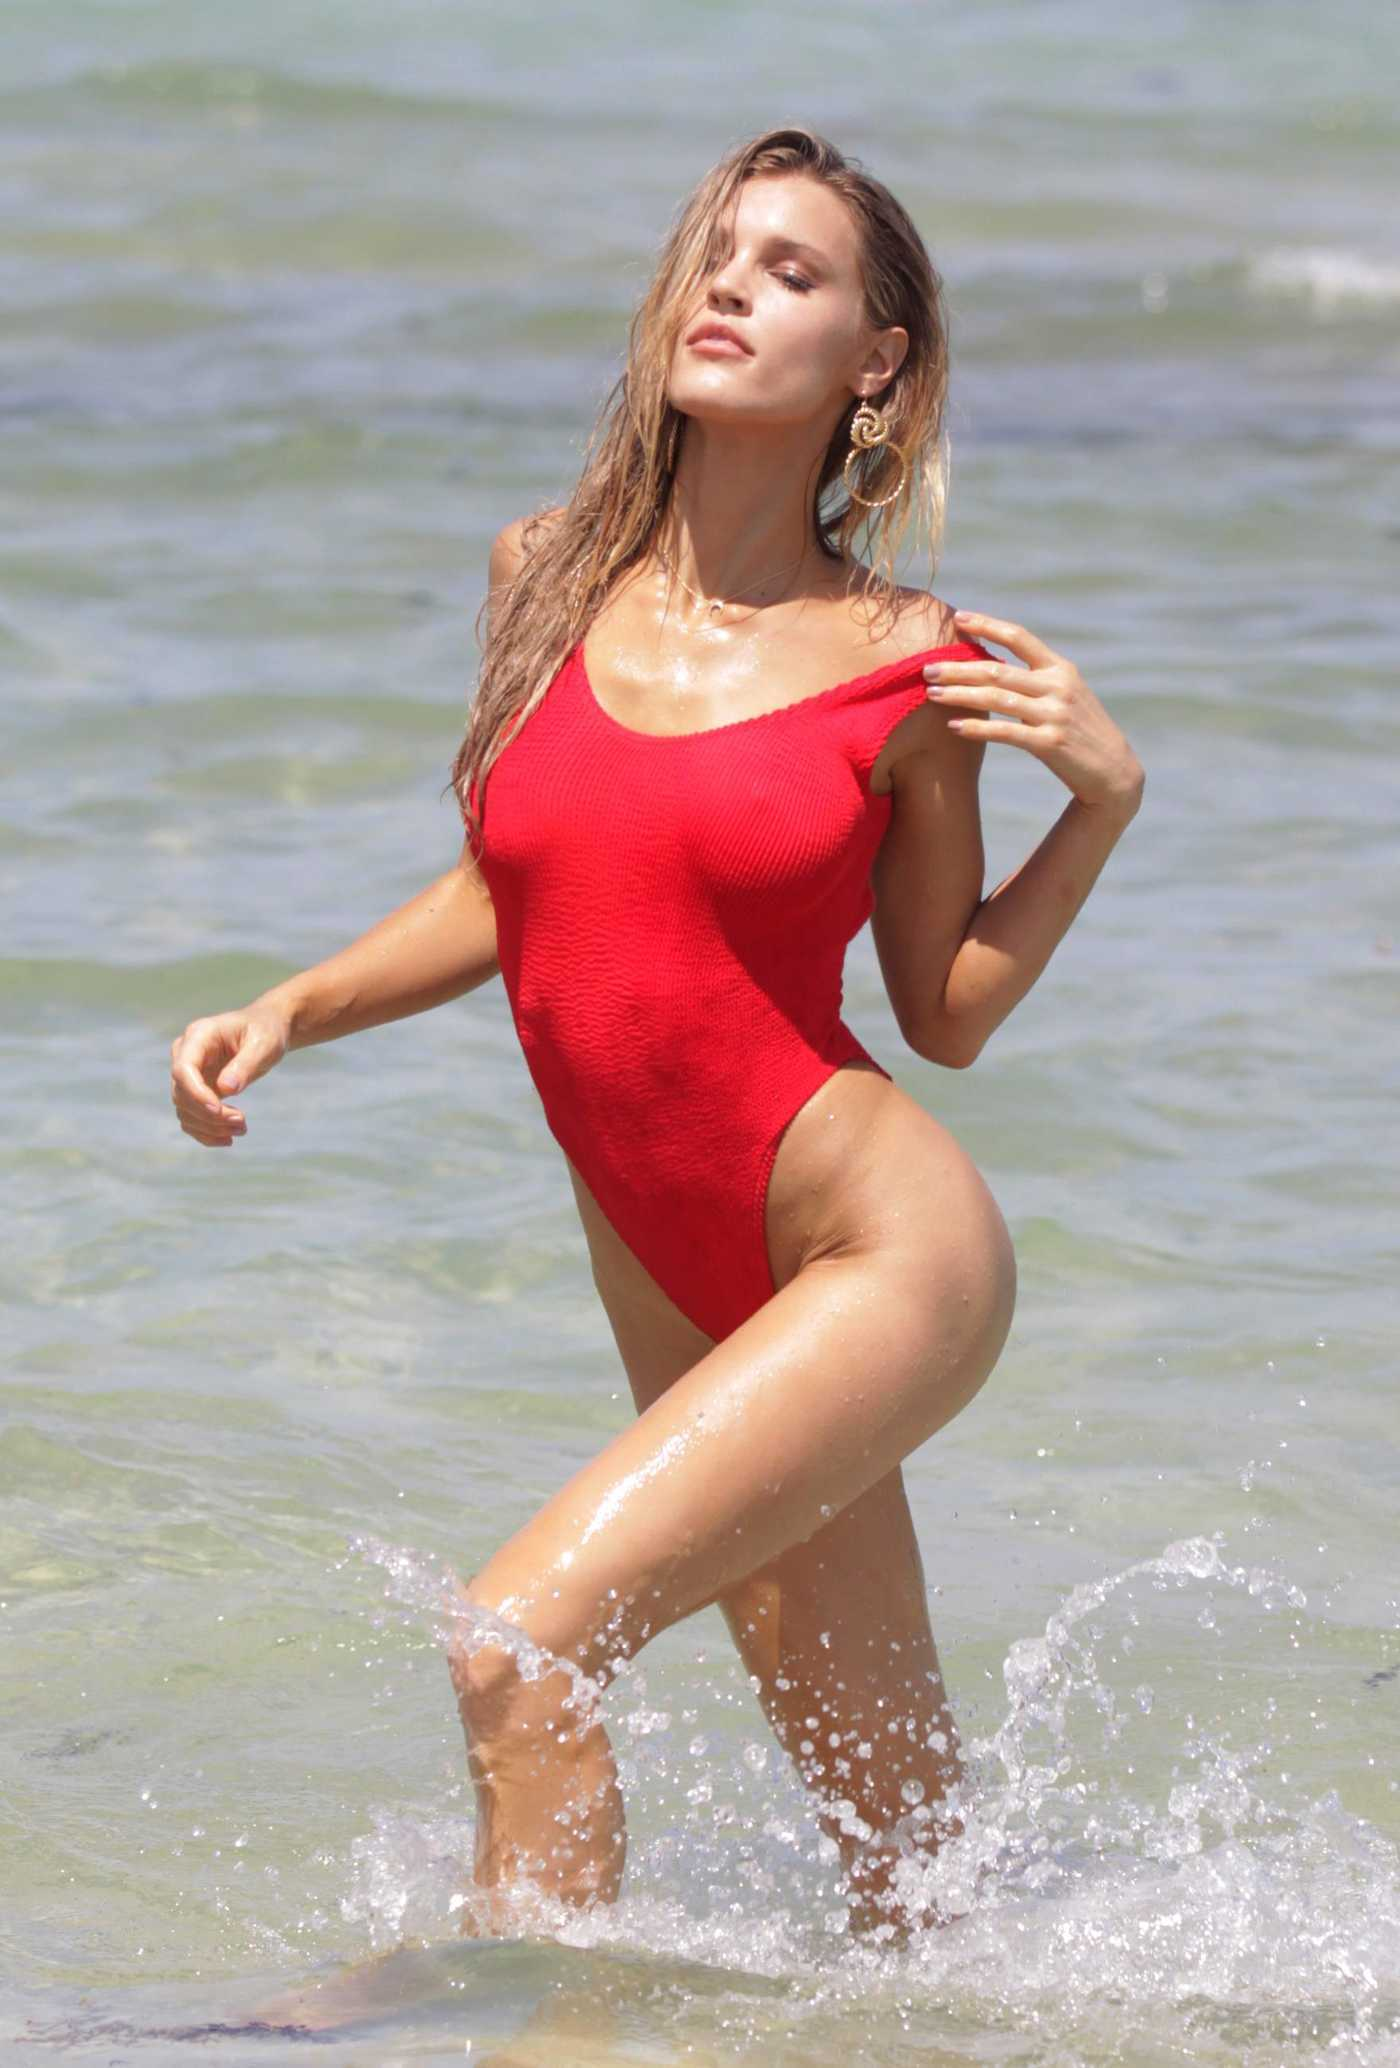 Joy Corrigan Wears a Red Swimsuit During a Photoshoot on the Beach in Miami 07/14/2018